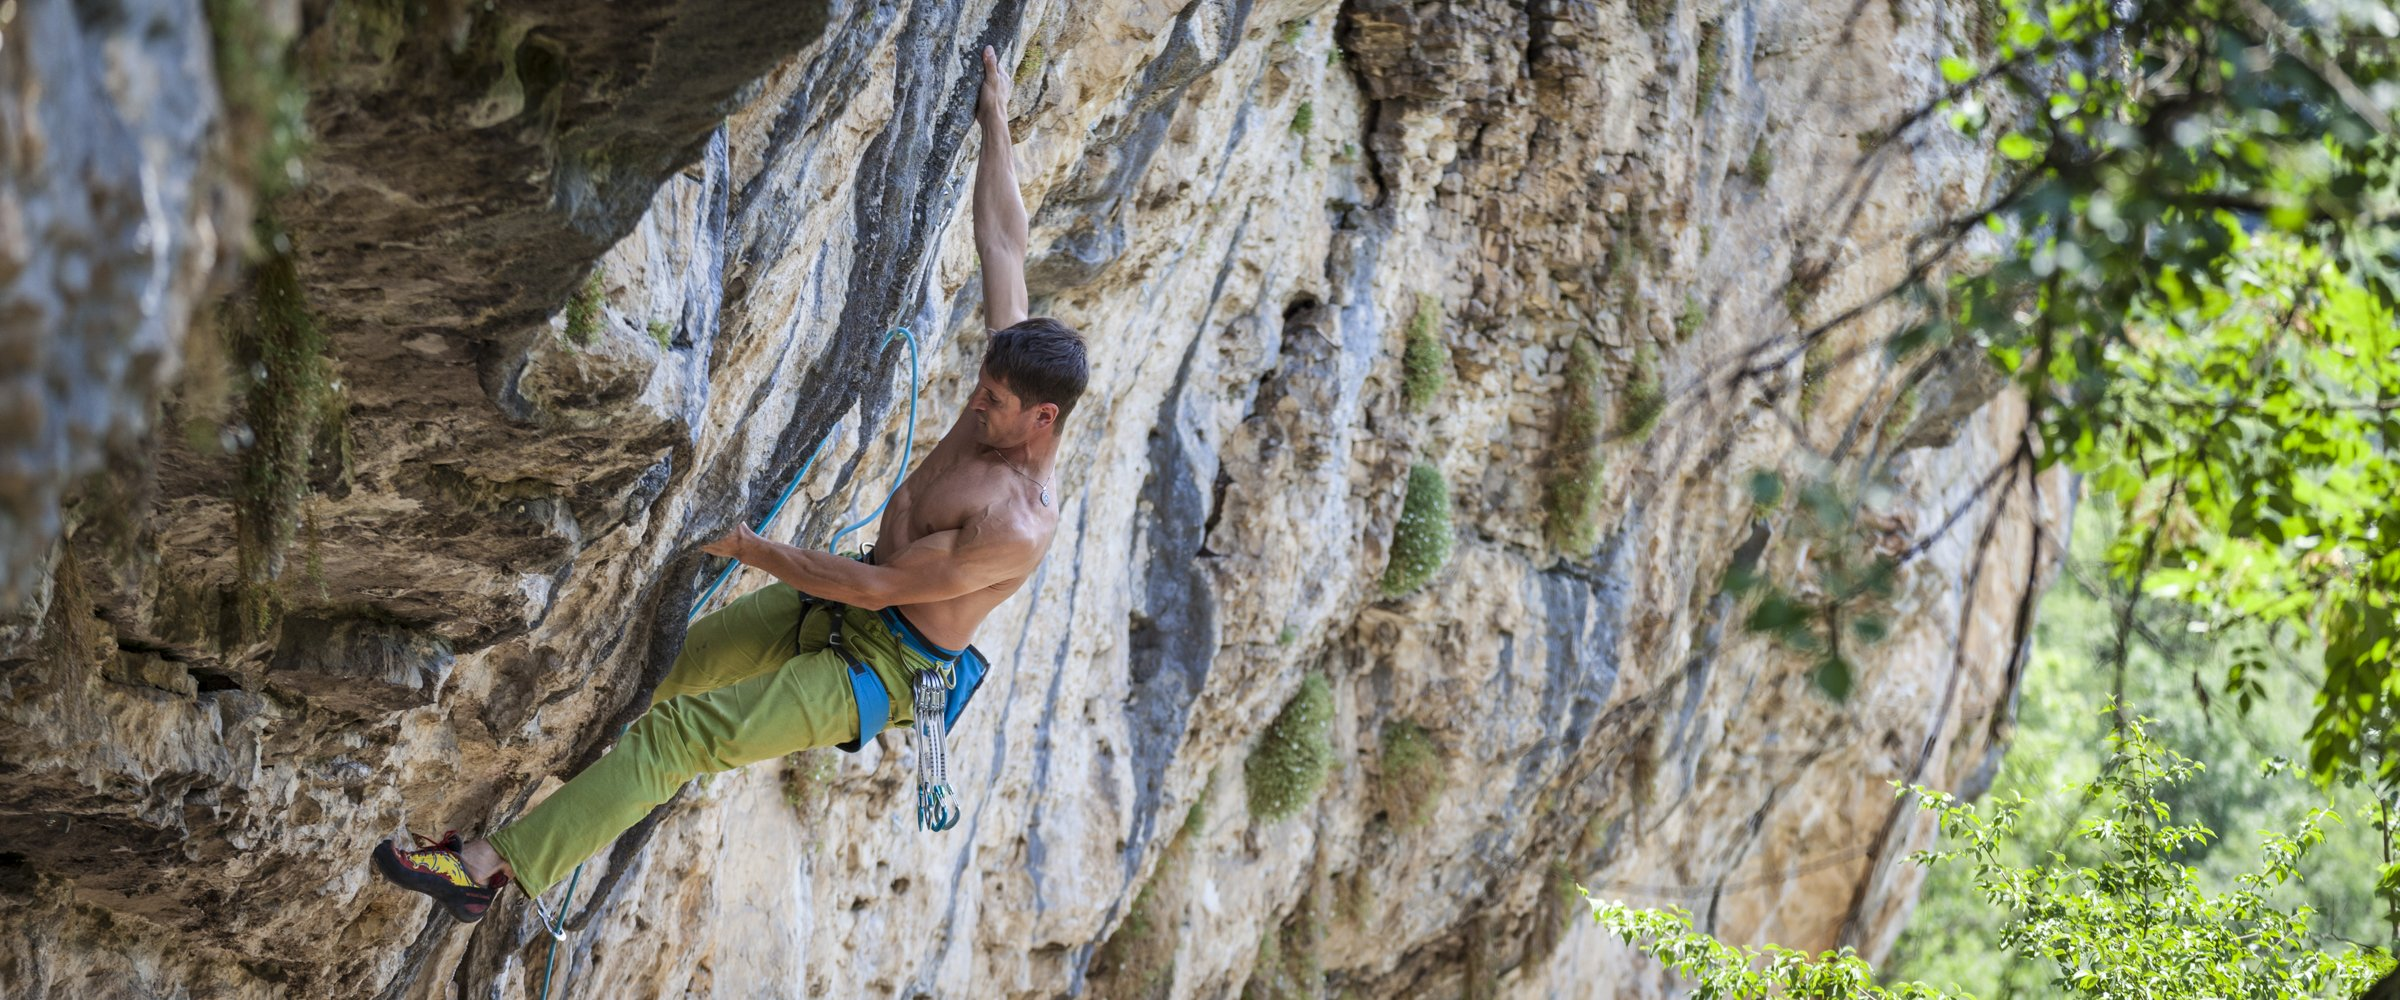 Claudio Migliorini for WildClimb